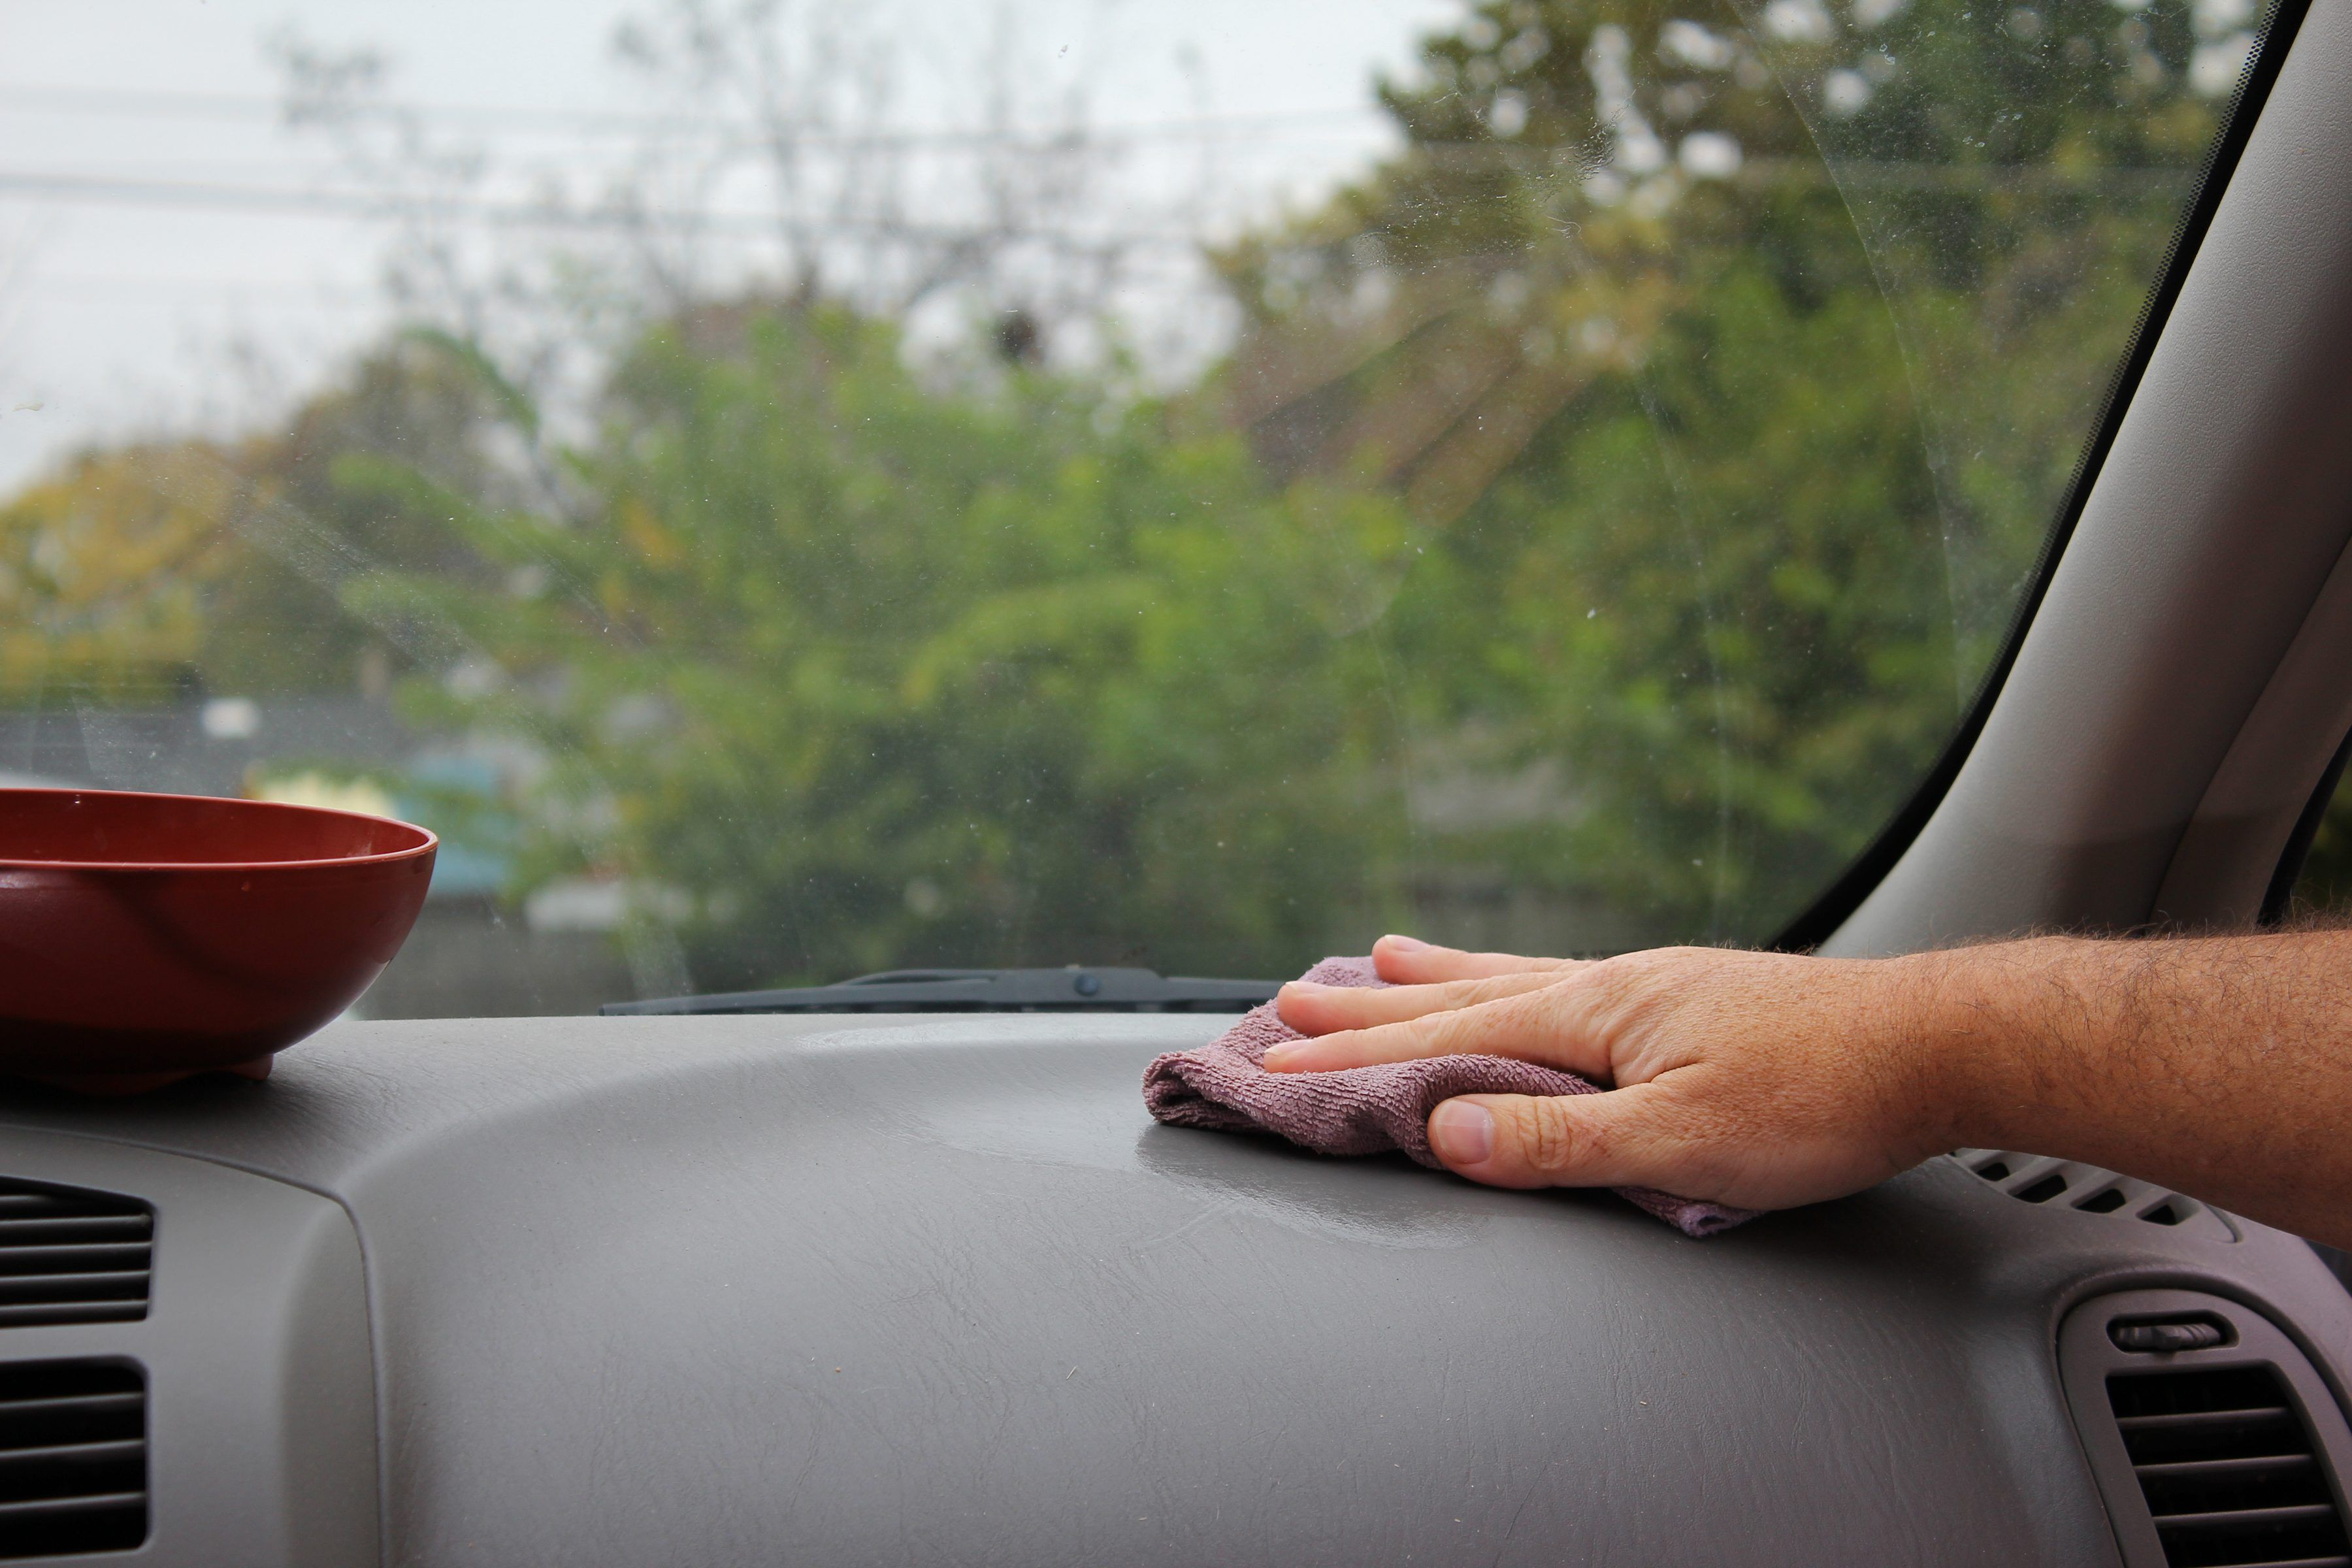 Best Way To Clean The Inside Of Car Windshield Ehow Com Cleaning Car Interior Windshield Cleaner Cleaning Car Windows